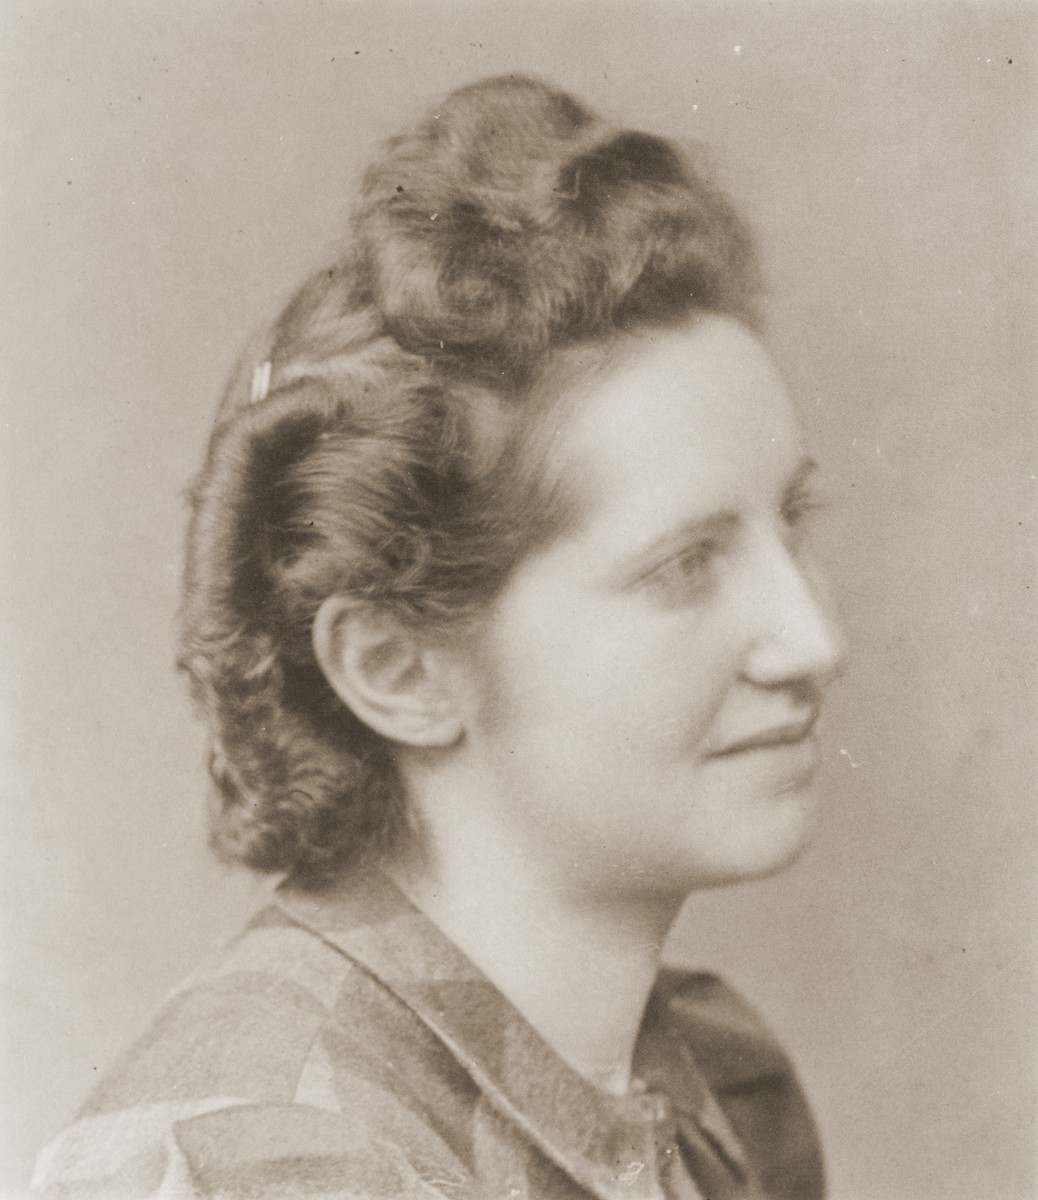 Portrait of Milly Cahen, a young Jewish woman from Luxembourg who was interned in Rivesaltes with Leo Bretholz after being turned back at the Swiss border.